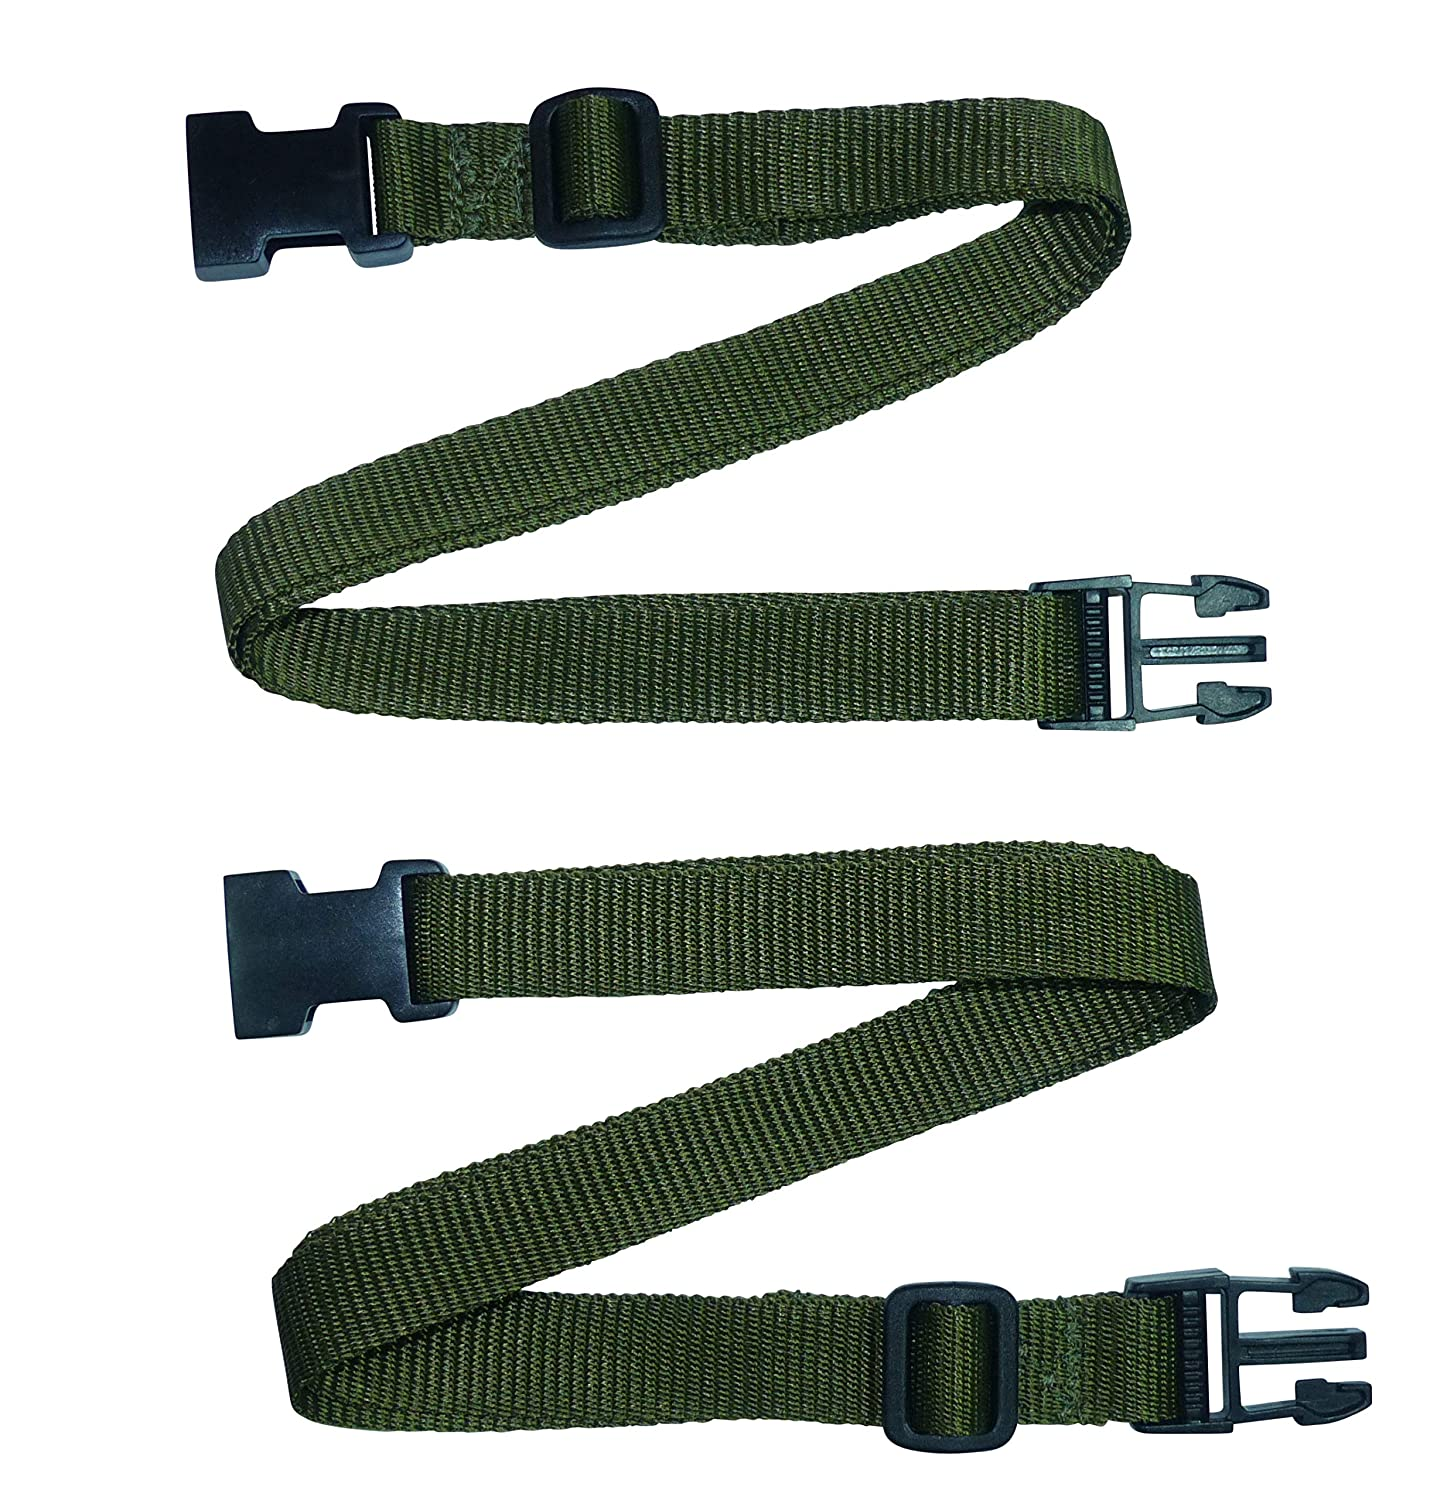 9 10 Length Adjuster Webbing Strap Black, 3 metres Pack of Two Quick Release Buckle